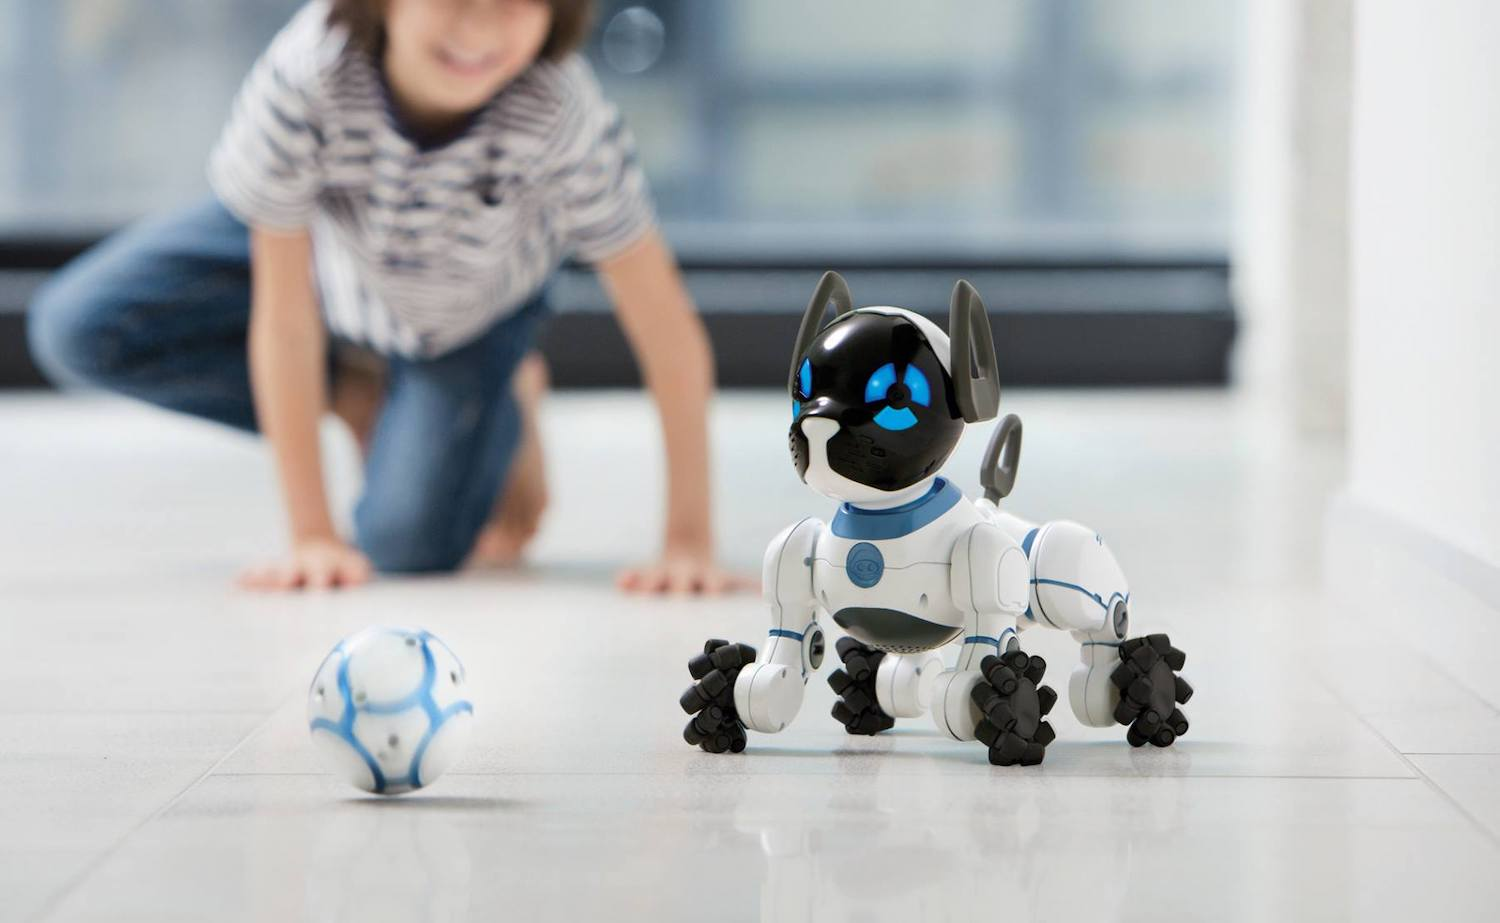 CHiP Affectionate Robot Dog behaves according to your responses